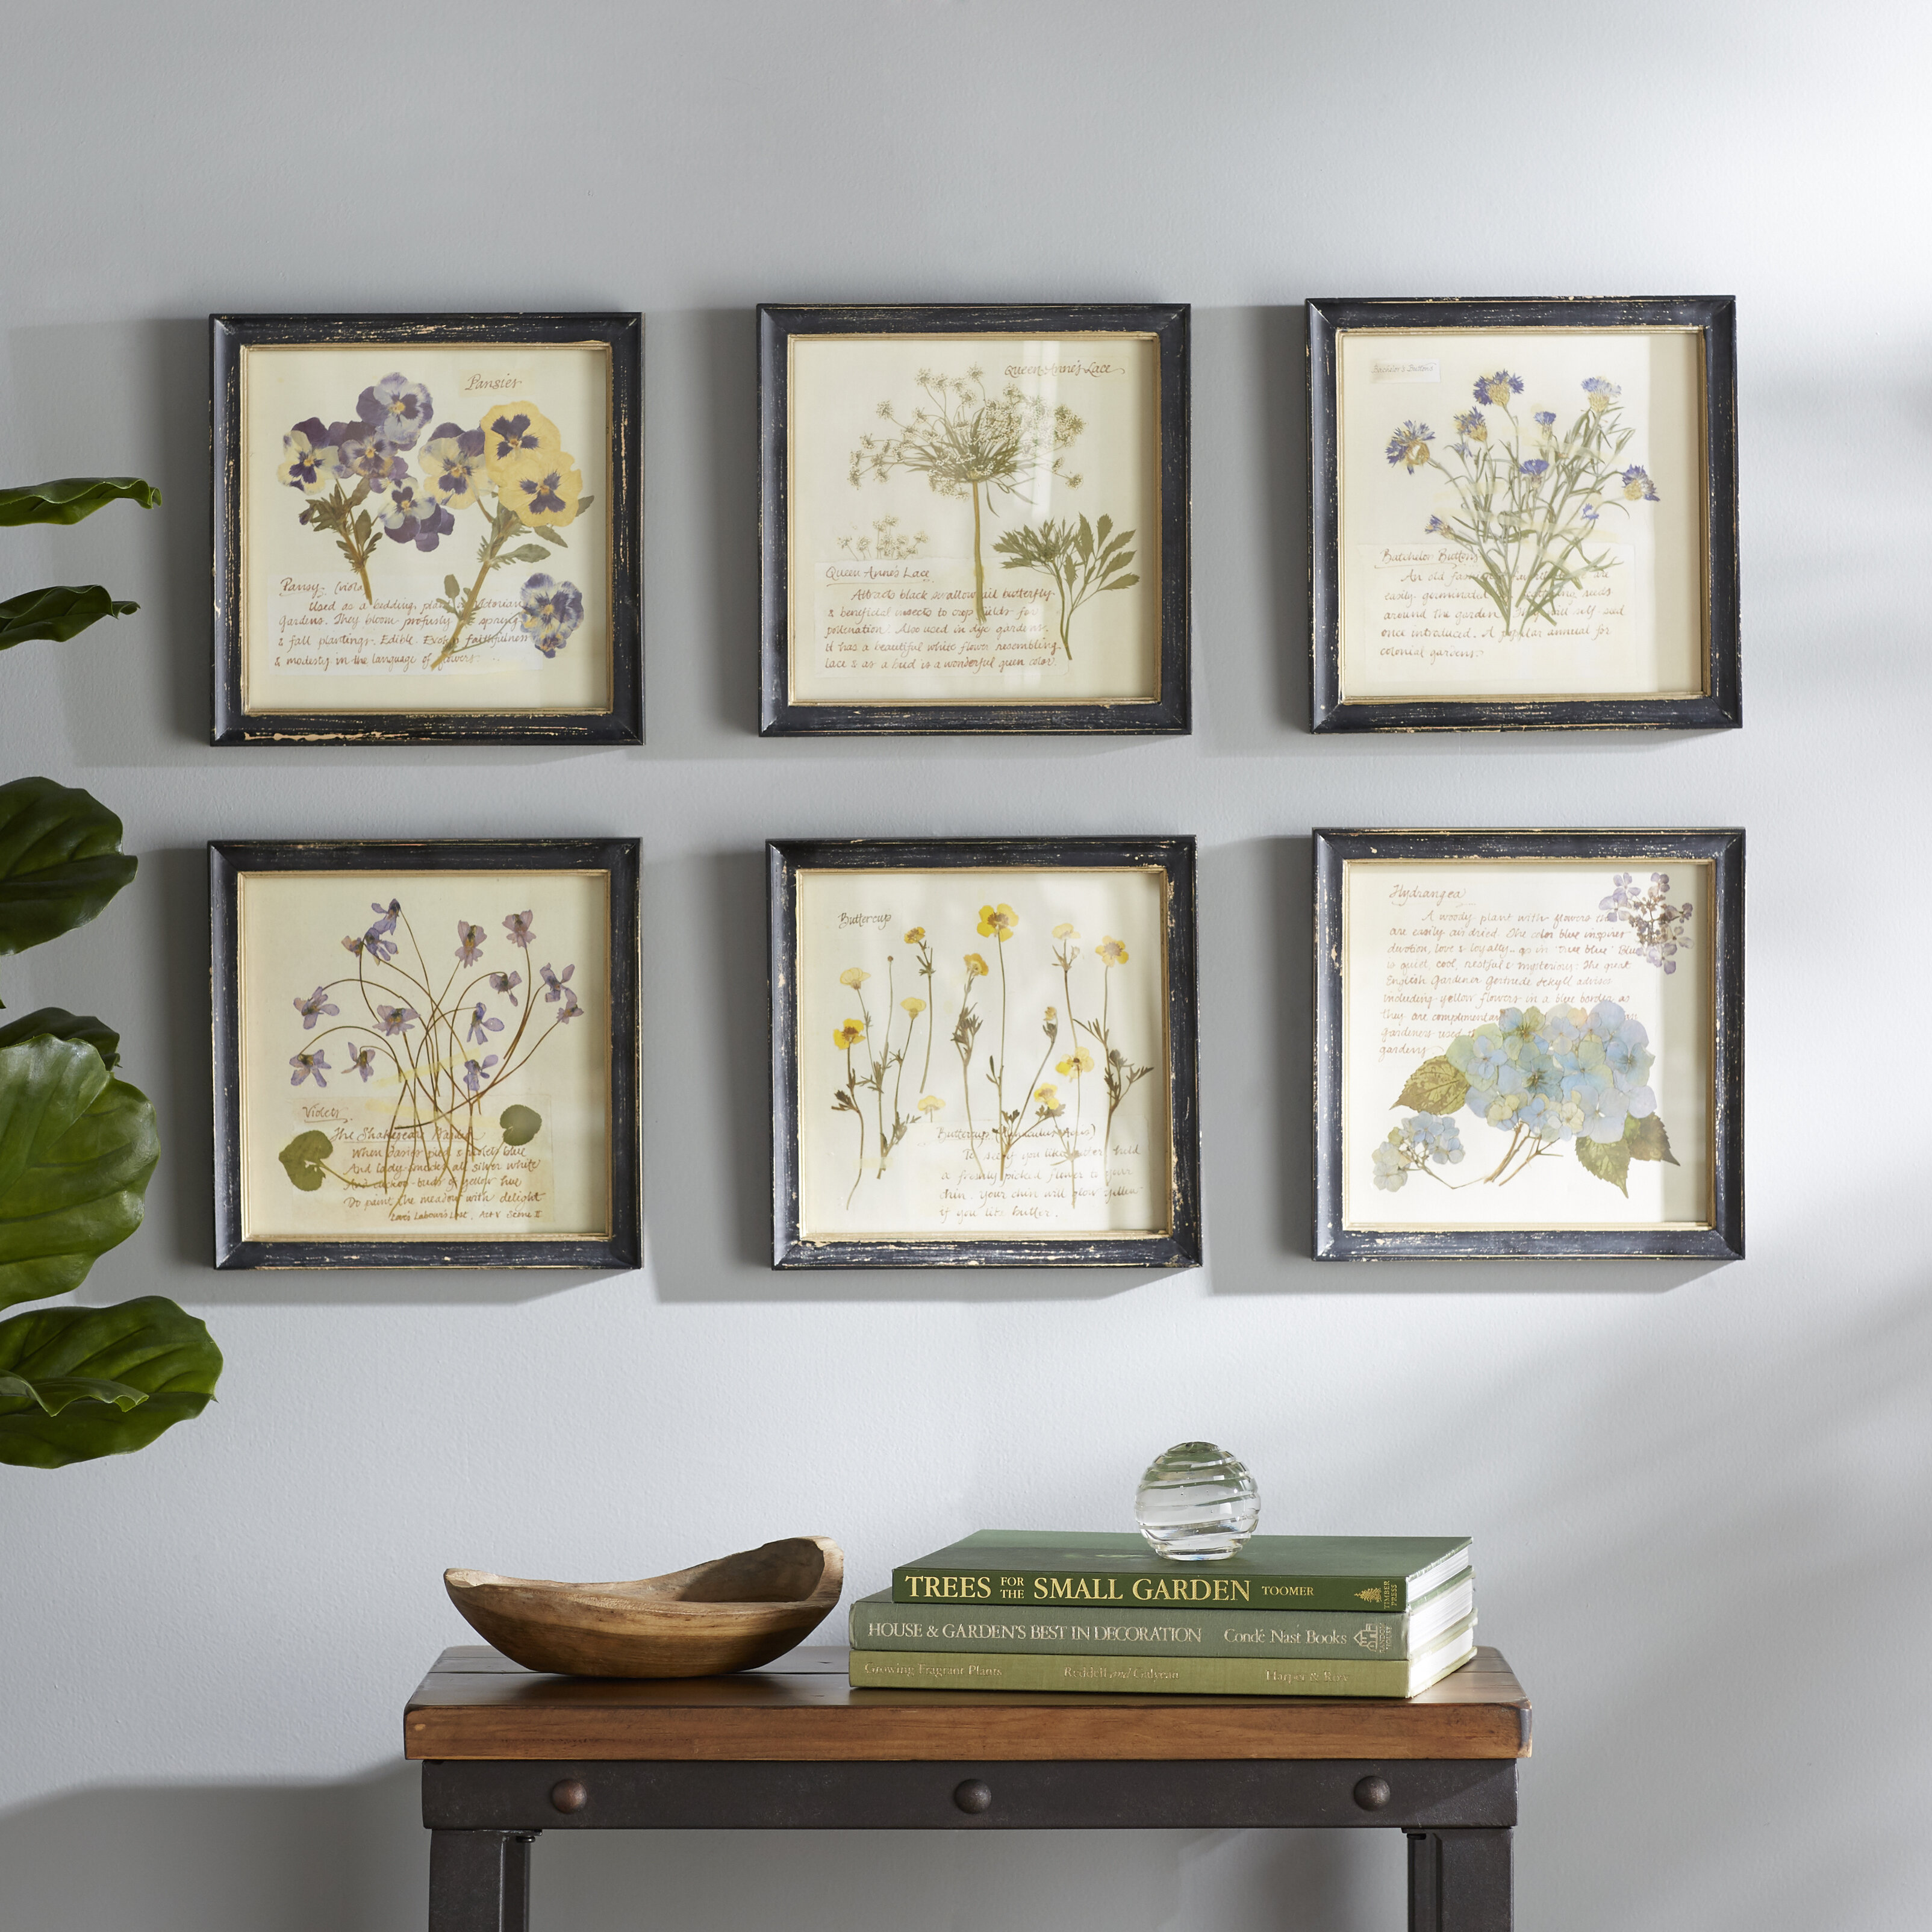 Birch Lane Square Wood Framed Wall Decor With Floral Images 6 Piece Picture Frame Graphic Art Print Set On Reviews Wayfair